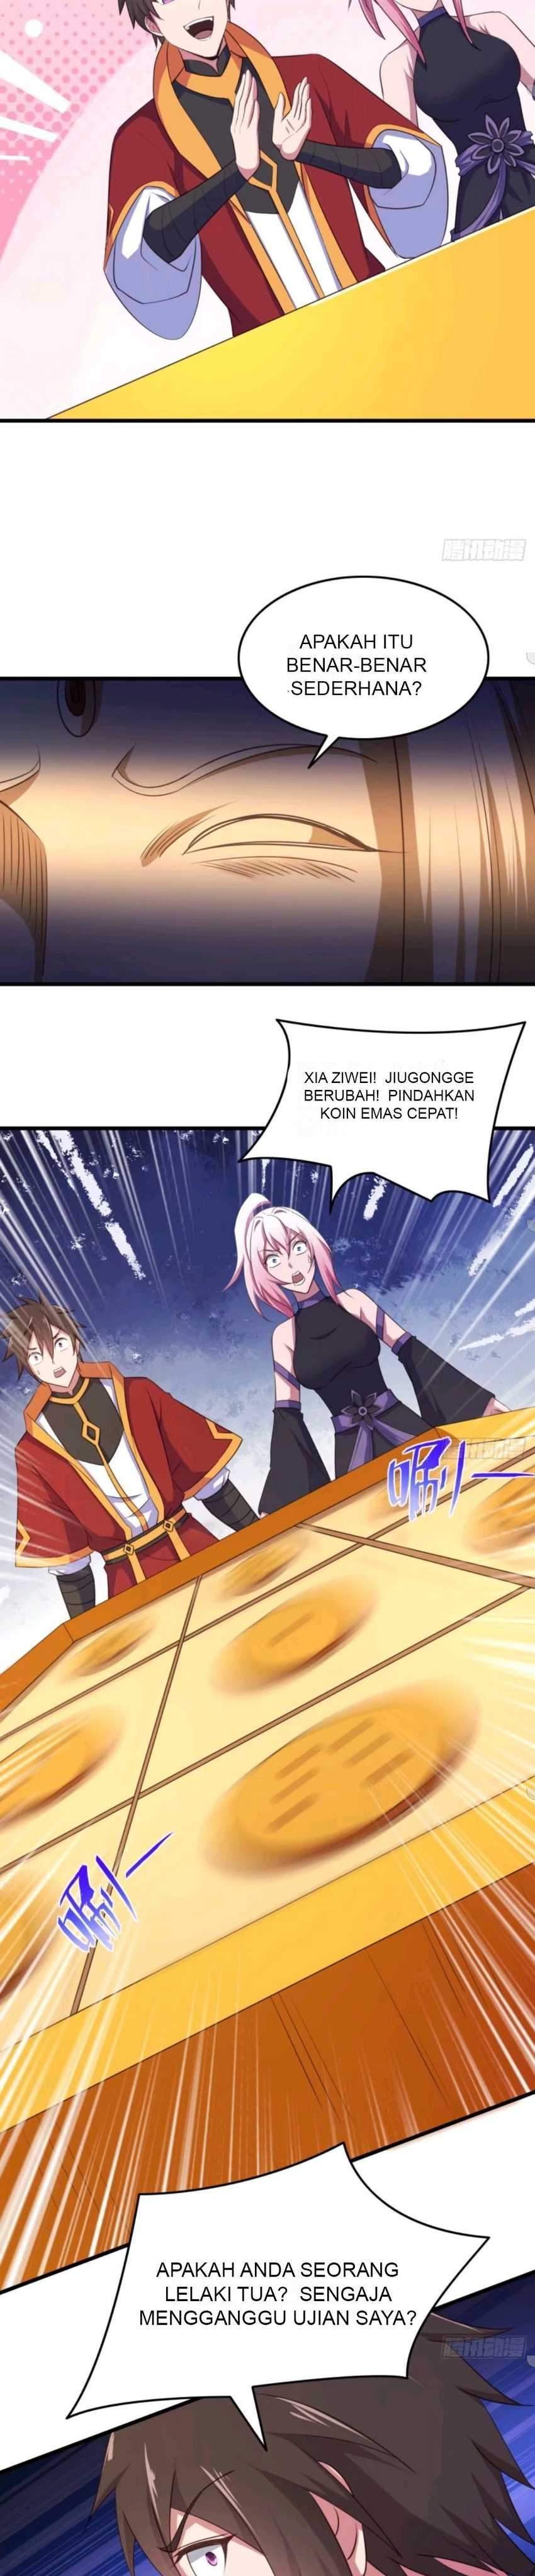 My Harem Depend on Drawing Cards Chapter 79